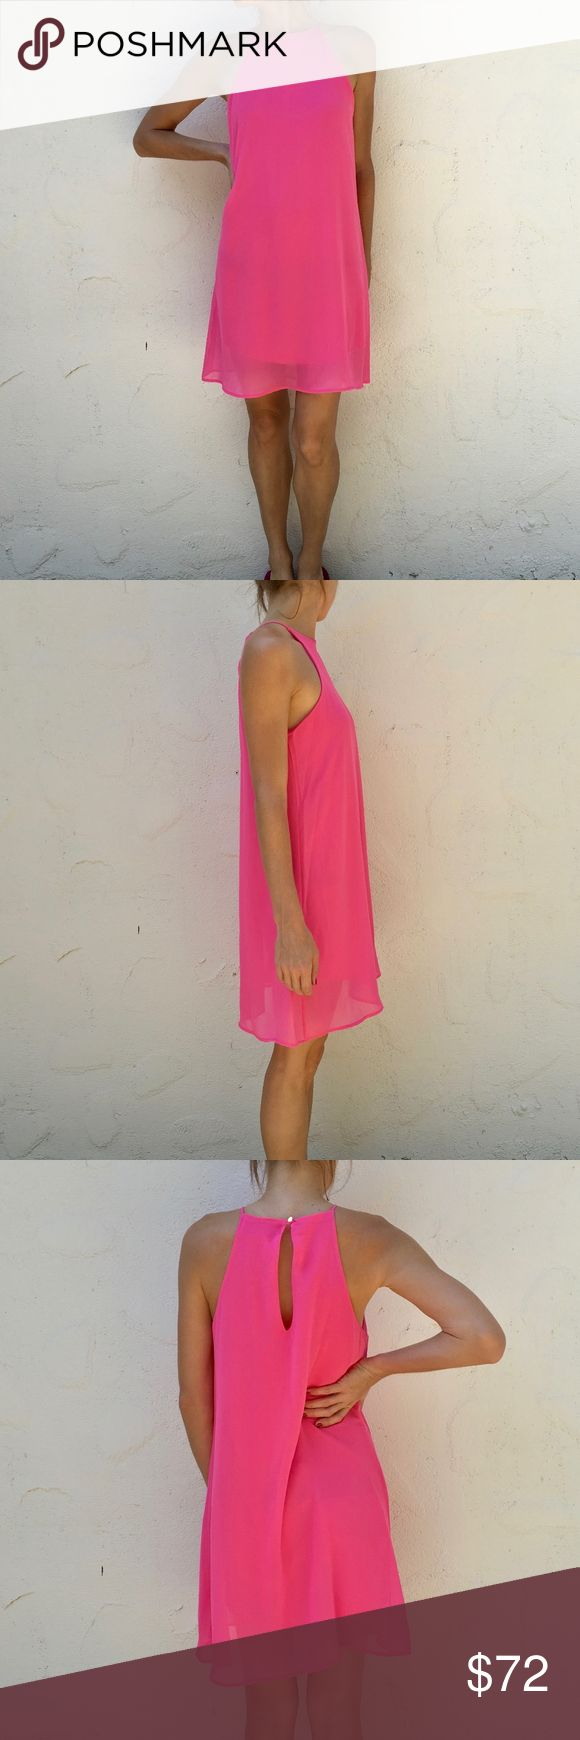 "Meghan LA Wanderlust Shift Mini Dress Candy Pink Mini Dress by Meghan LA Back keyhole with button closure Trapeze silhouette Fully lined Length 32"" USA Made! NWOT Meghan LA Dresses Mini"